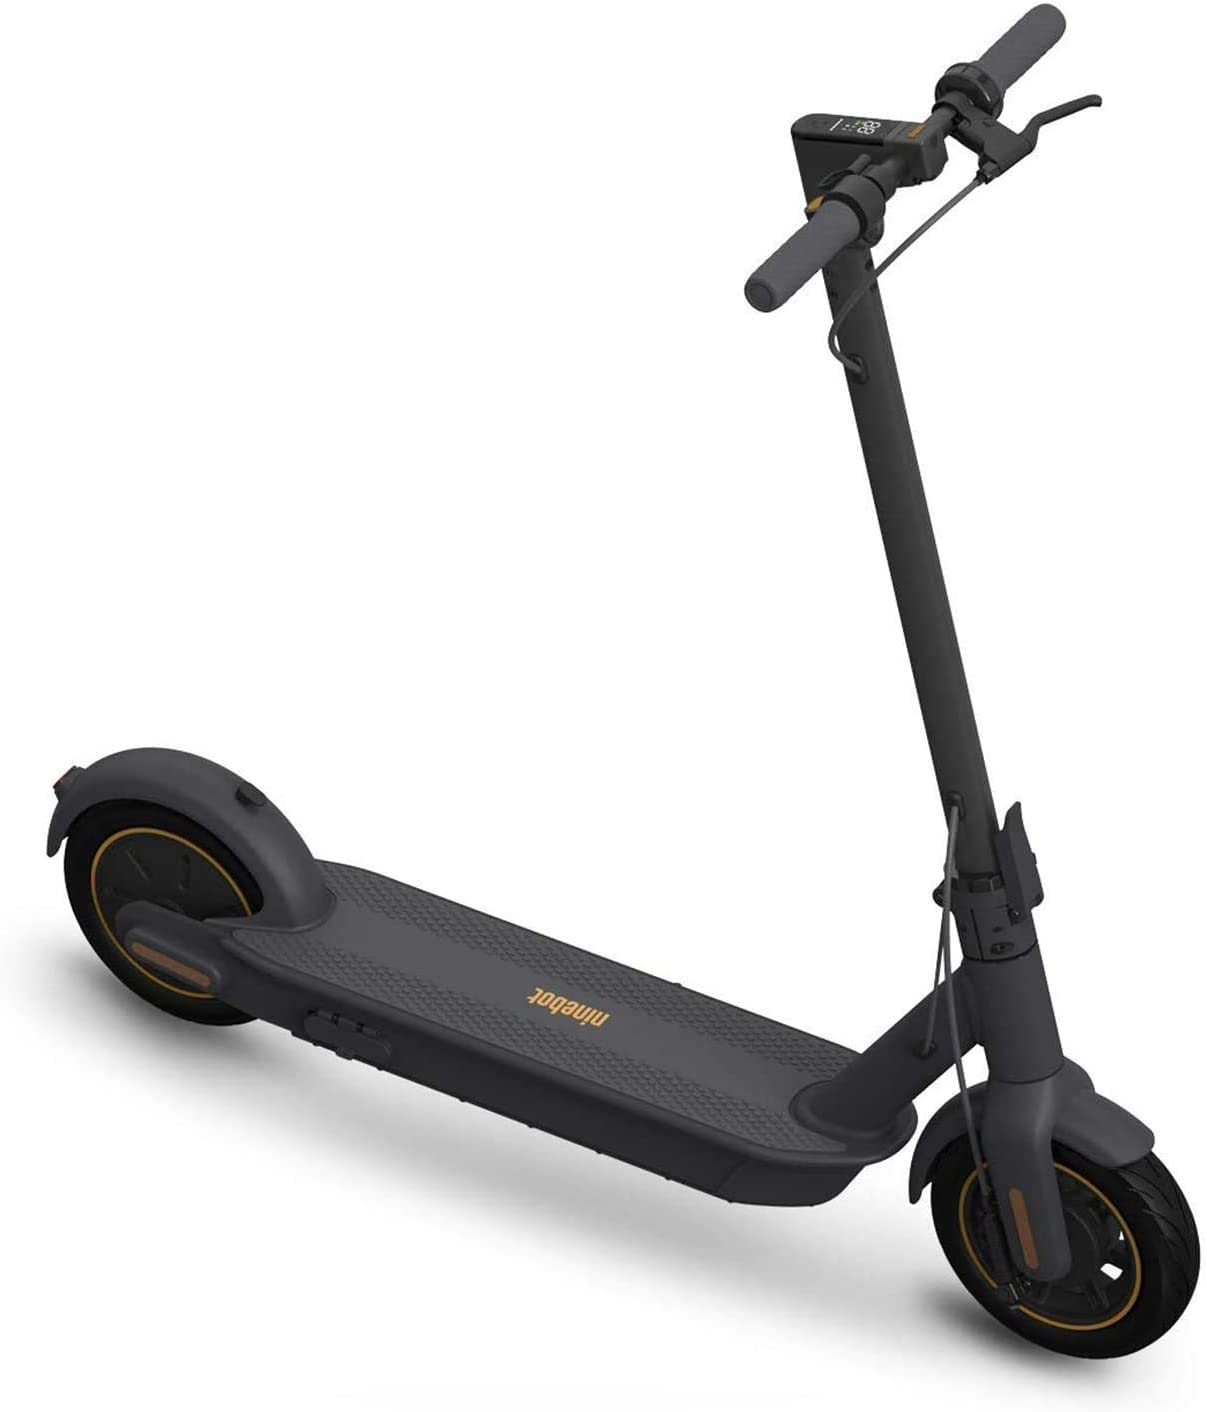 Amazon.com : SEGWAY Ninebot MAX Electric Kick Scooter Up to 40.4 Miles Long-range Battery Max Speed 18.6 MPH Foldable and Portable Dark Grey, Extra Large (G30P) : Sports & Outdoors